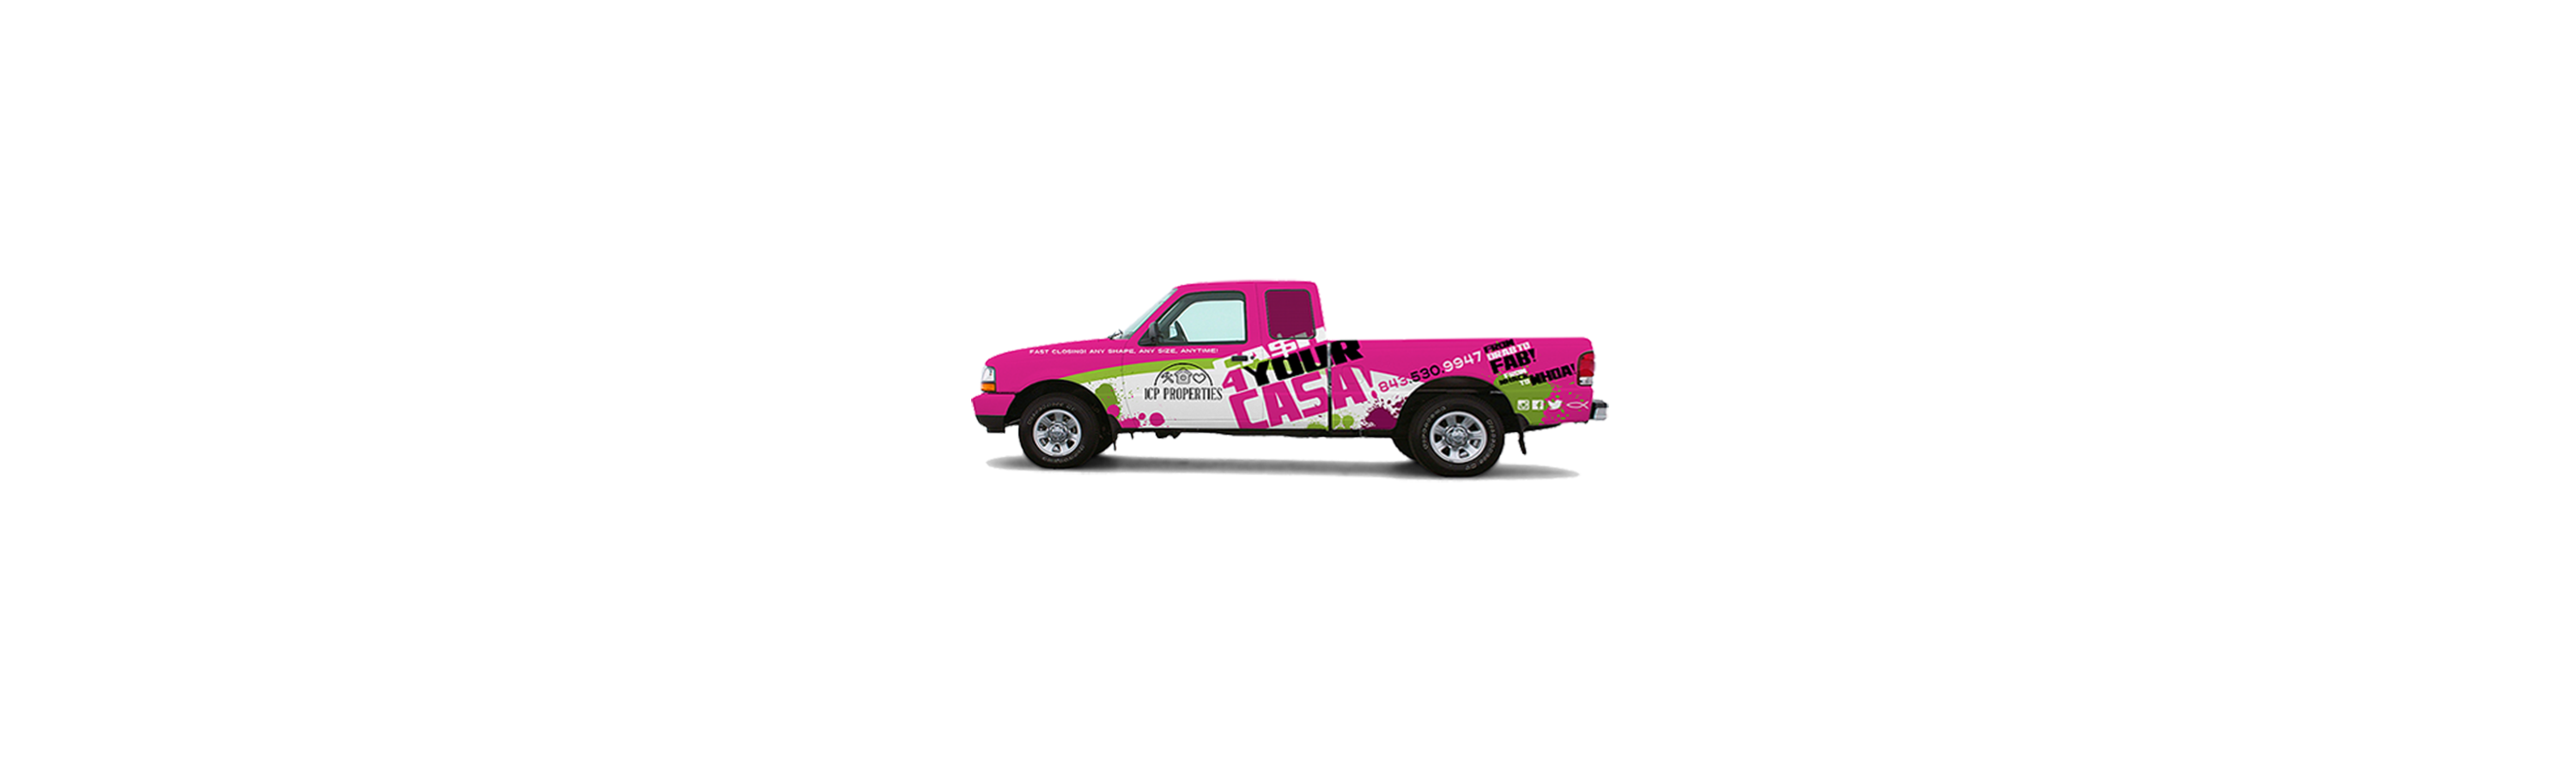 Truck Wraps Category Descriptions